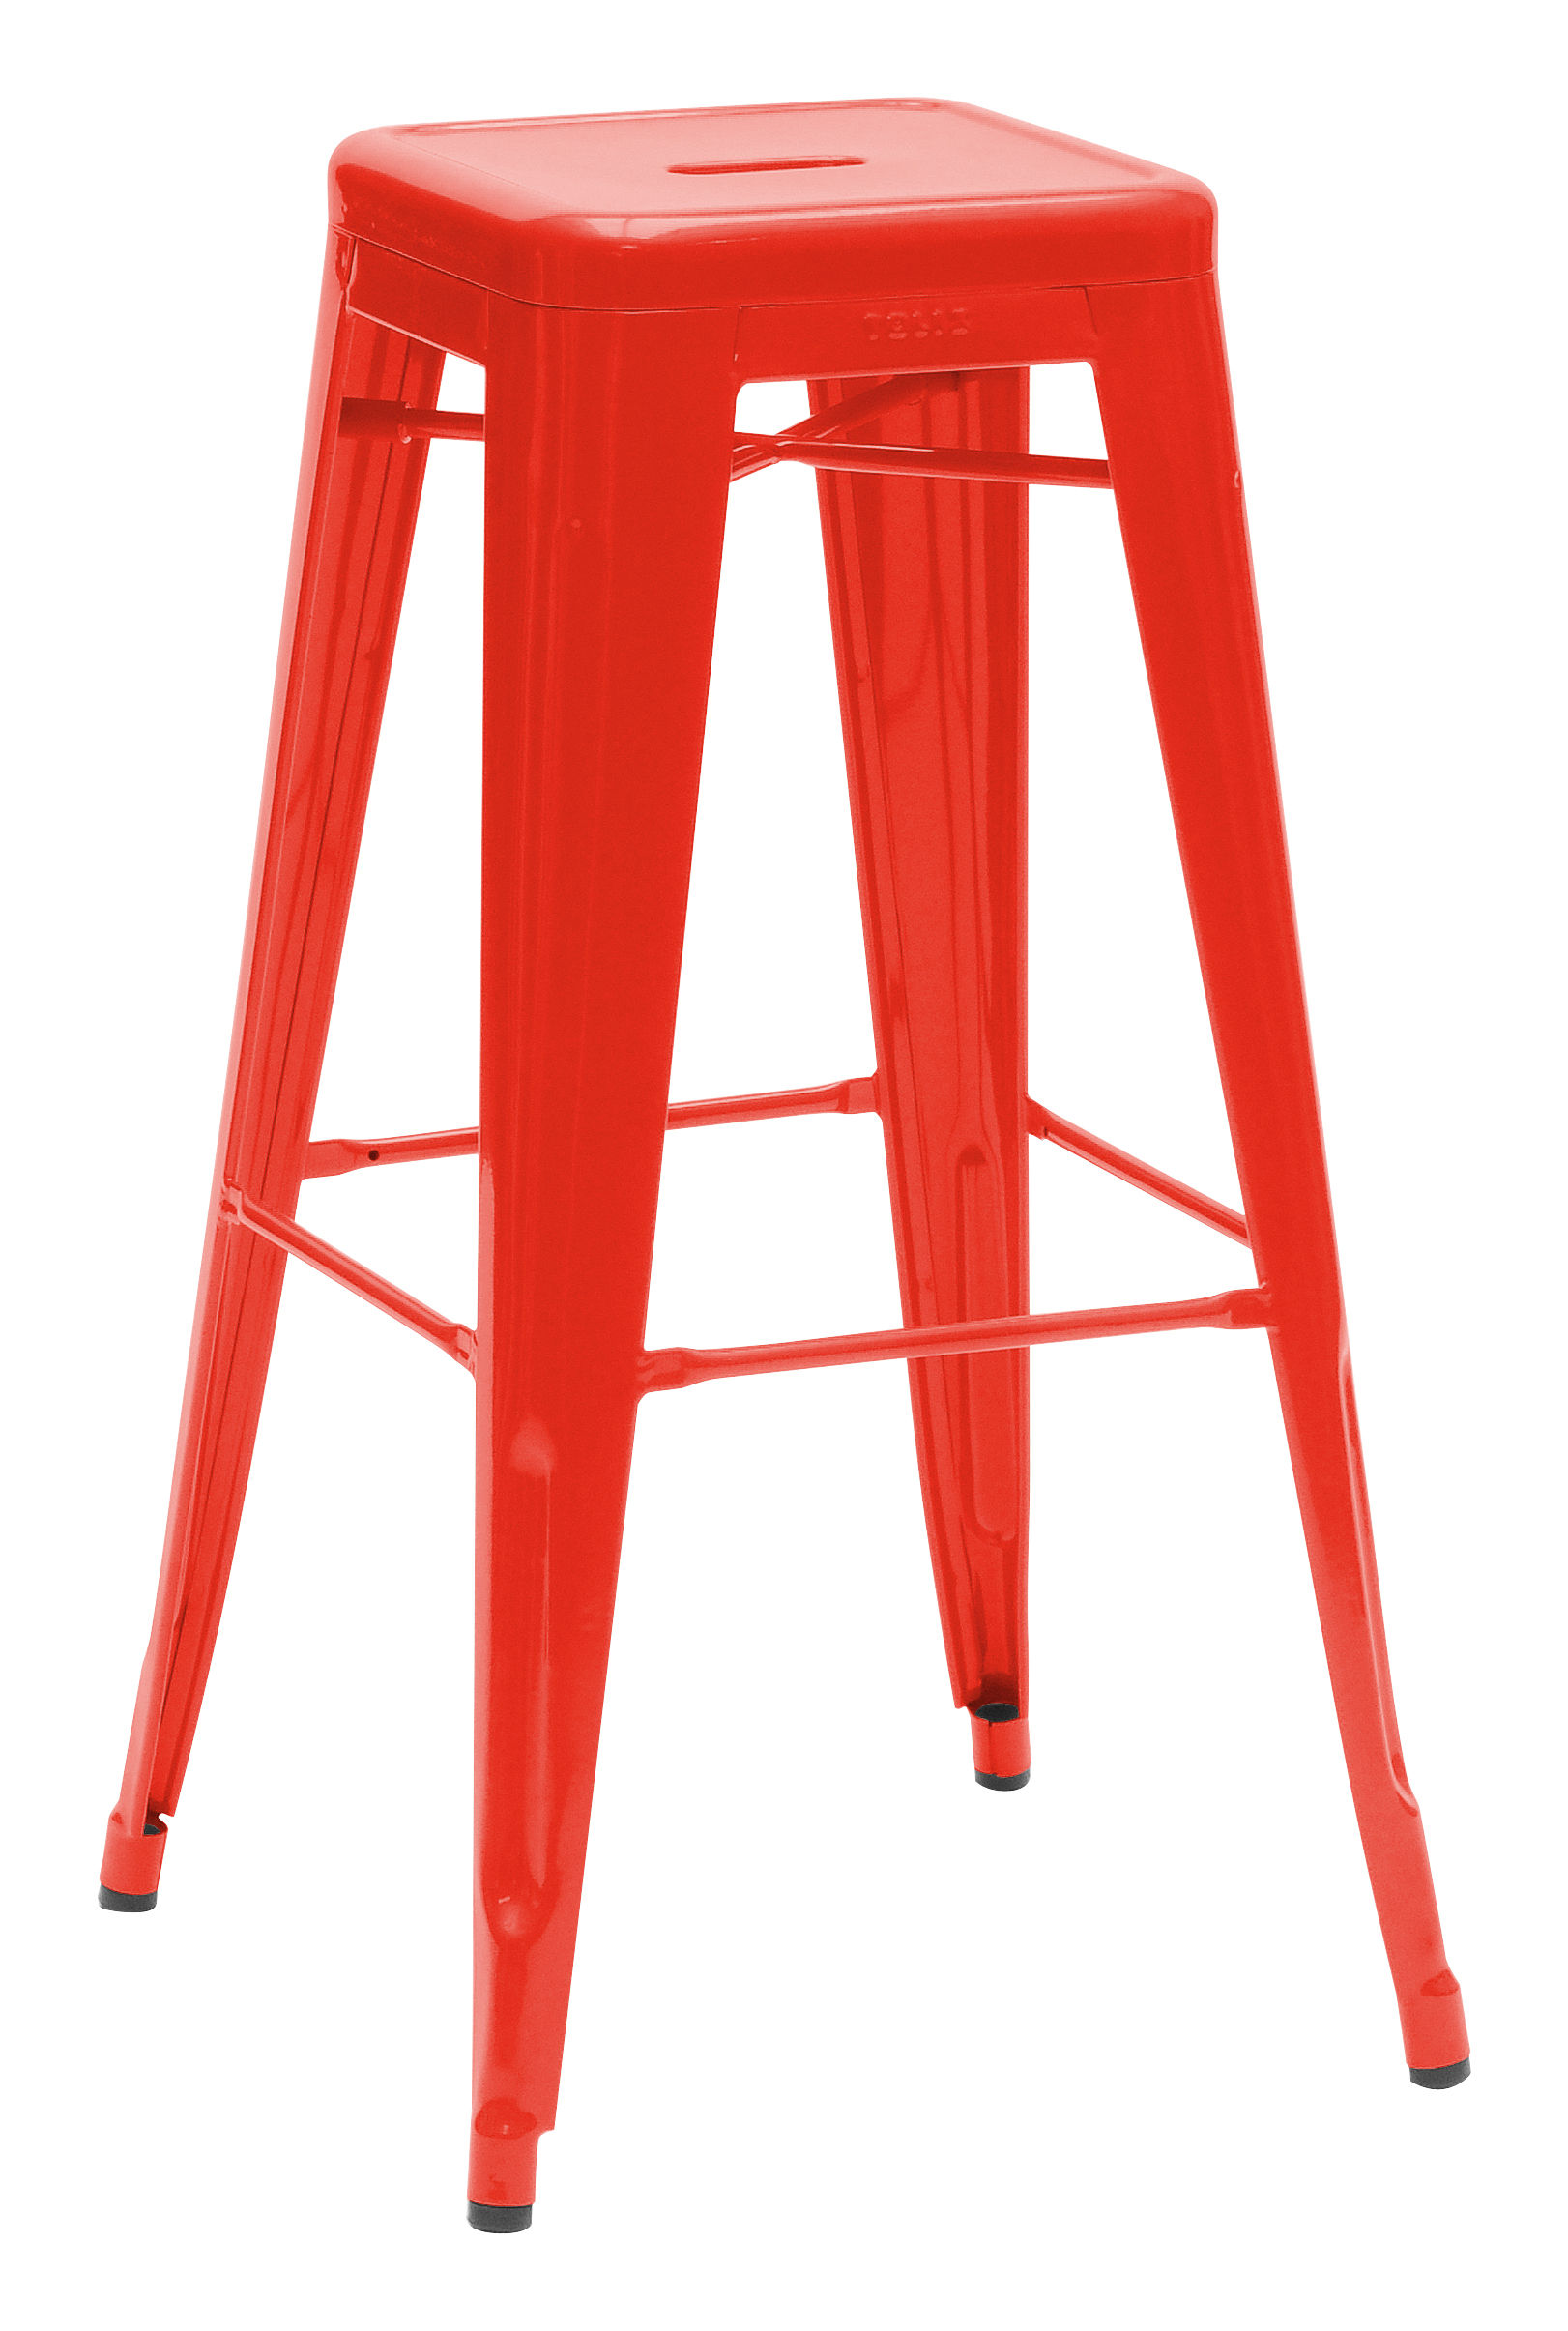 Furniture - Bar Stools - H Bar stool - H 75 cm - Glossy color by Tolix - Red - Lacquered steel